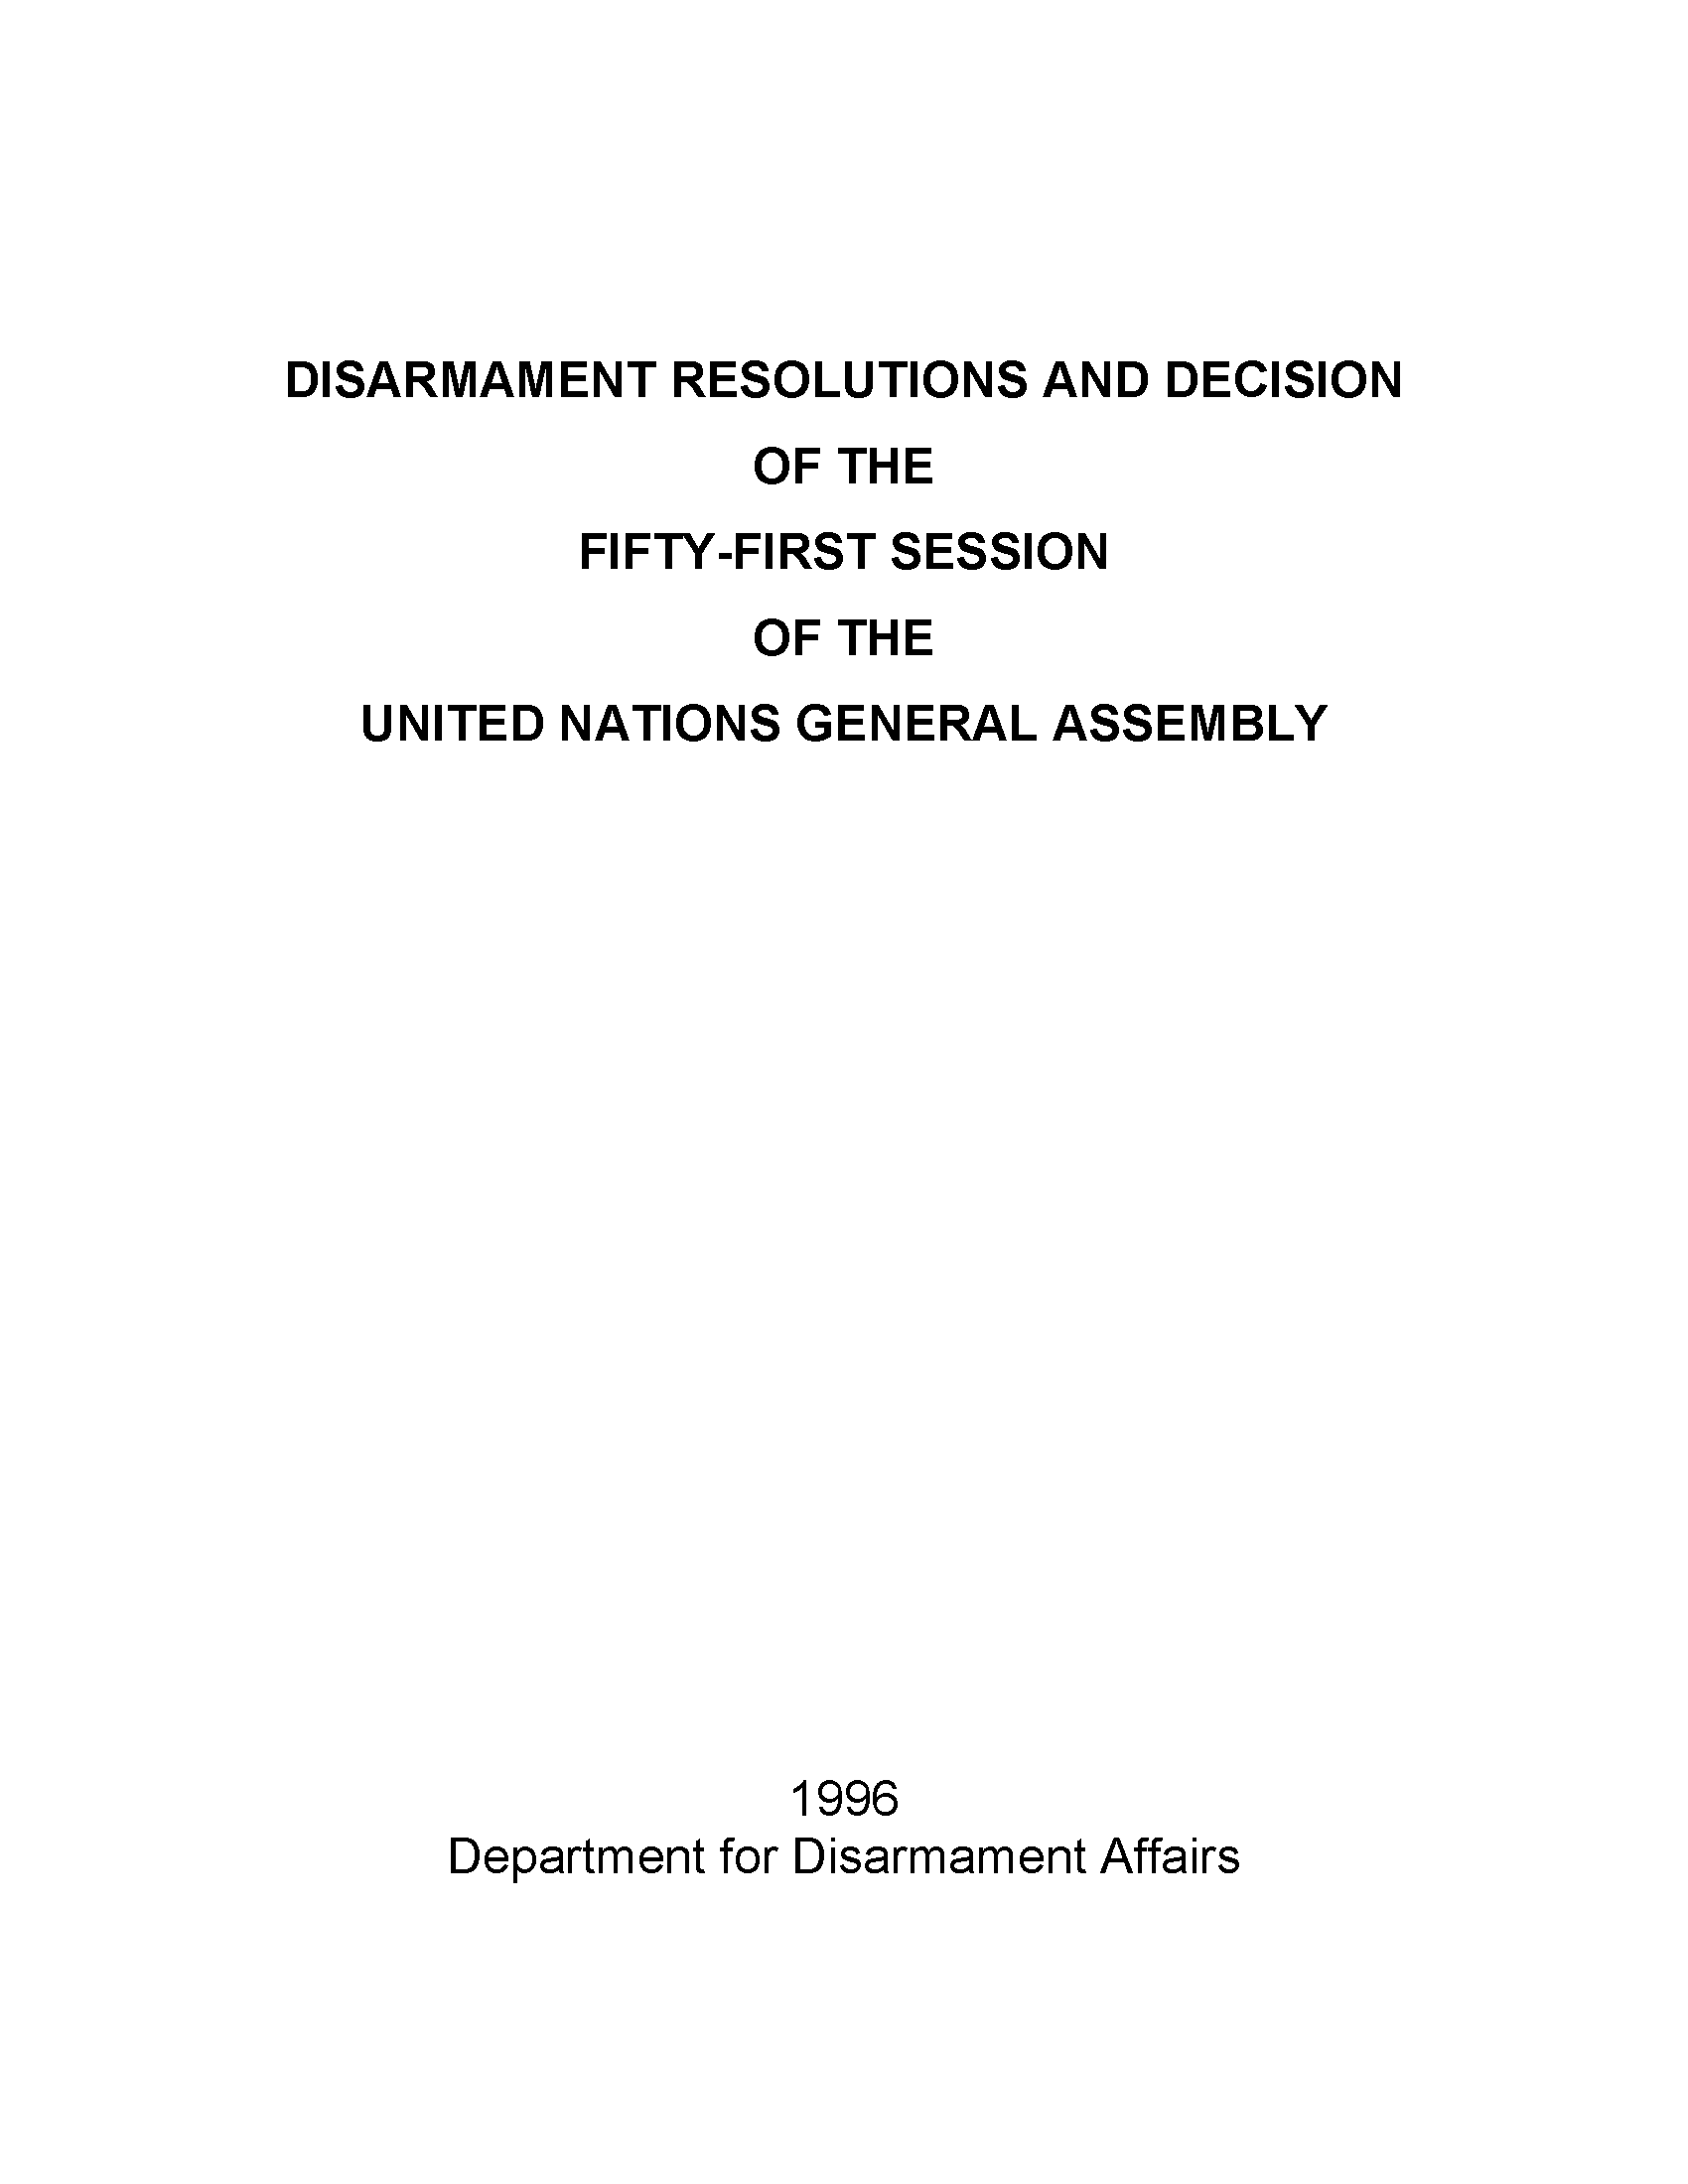 Disarmament Resolutions and Decisions of the Fifty-first Session of the United Nations General Assembly, 1996